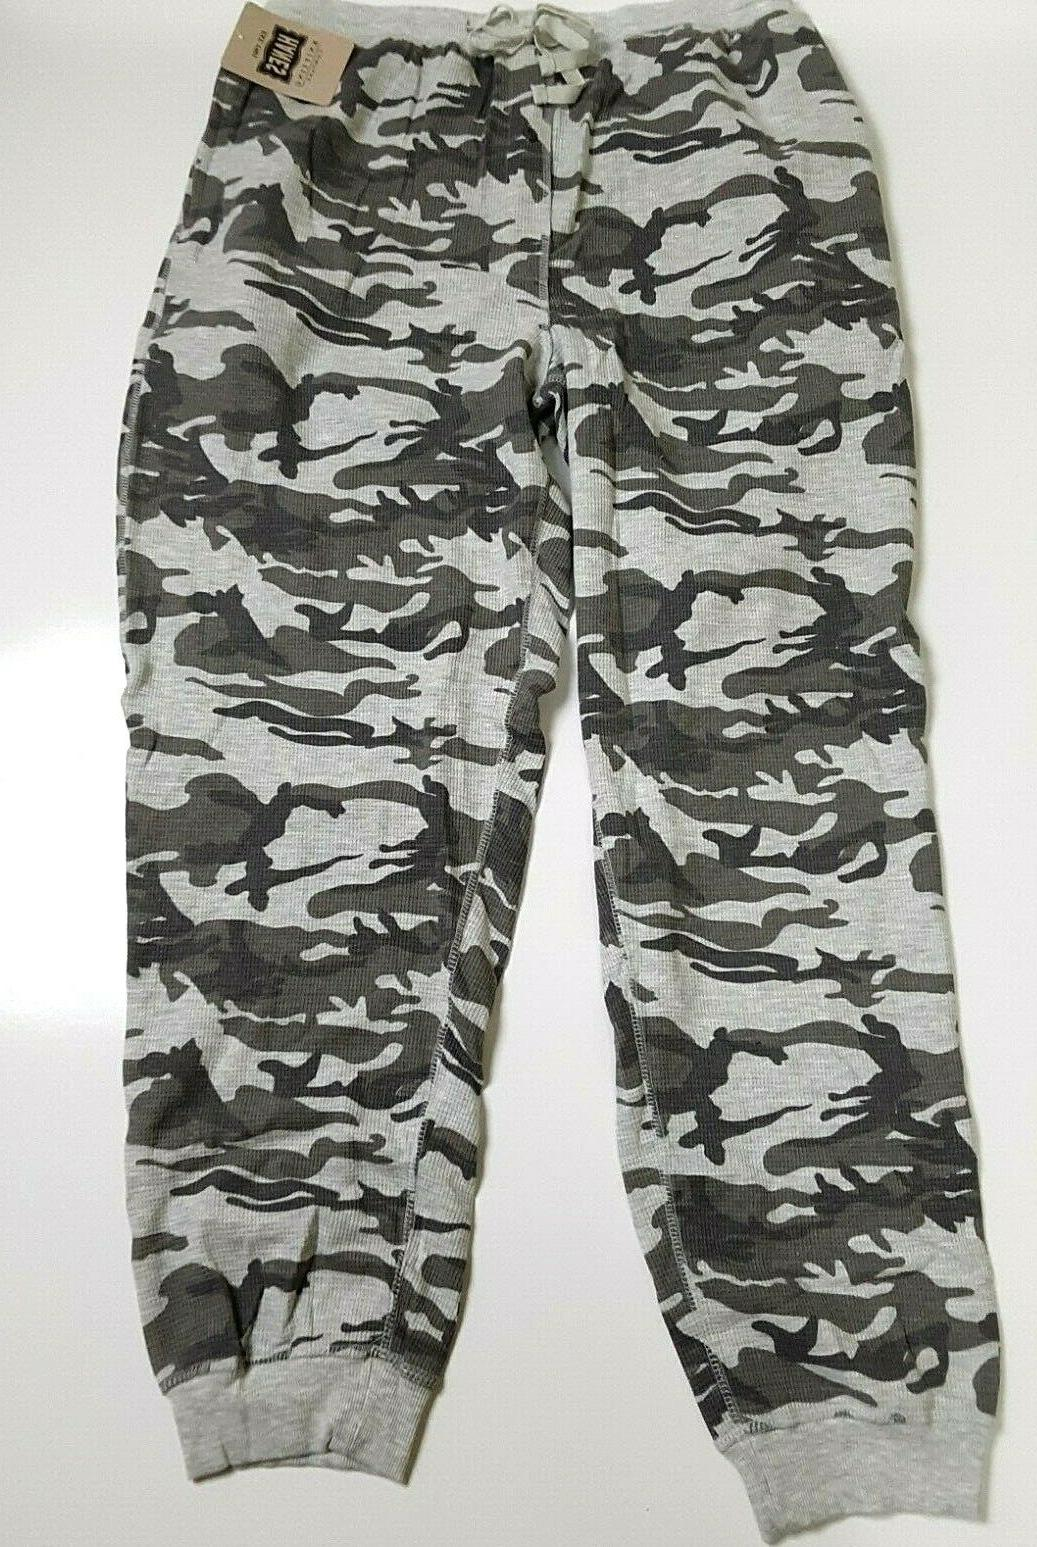 2 PAIR'S Hanes EXTRA LARGE Men's Thermal Waffle Knit Jogger